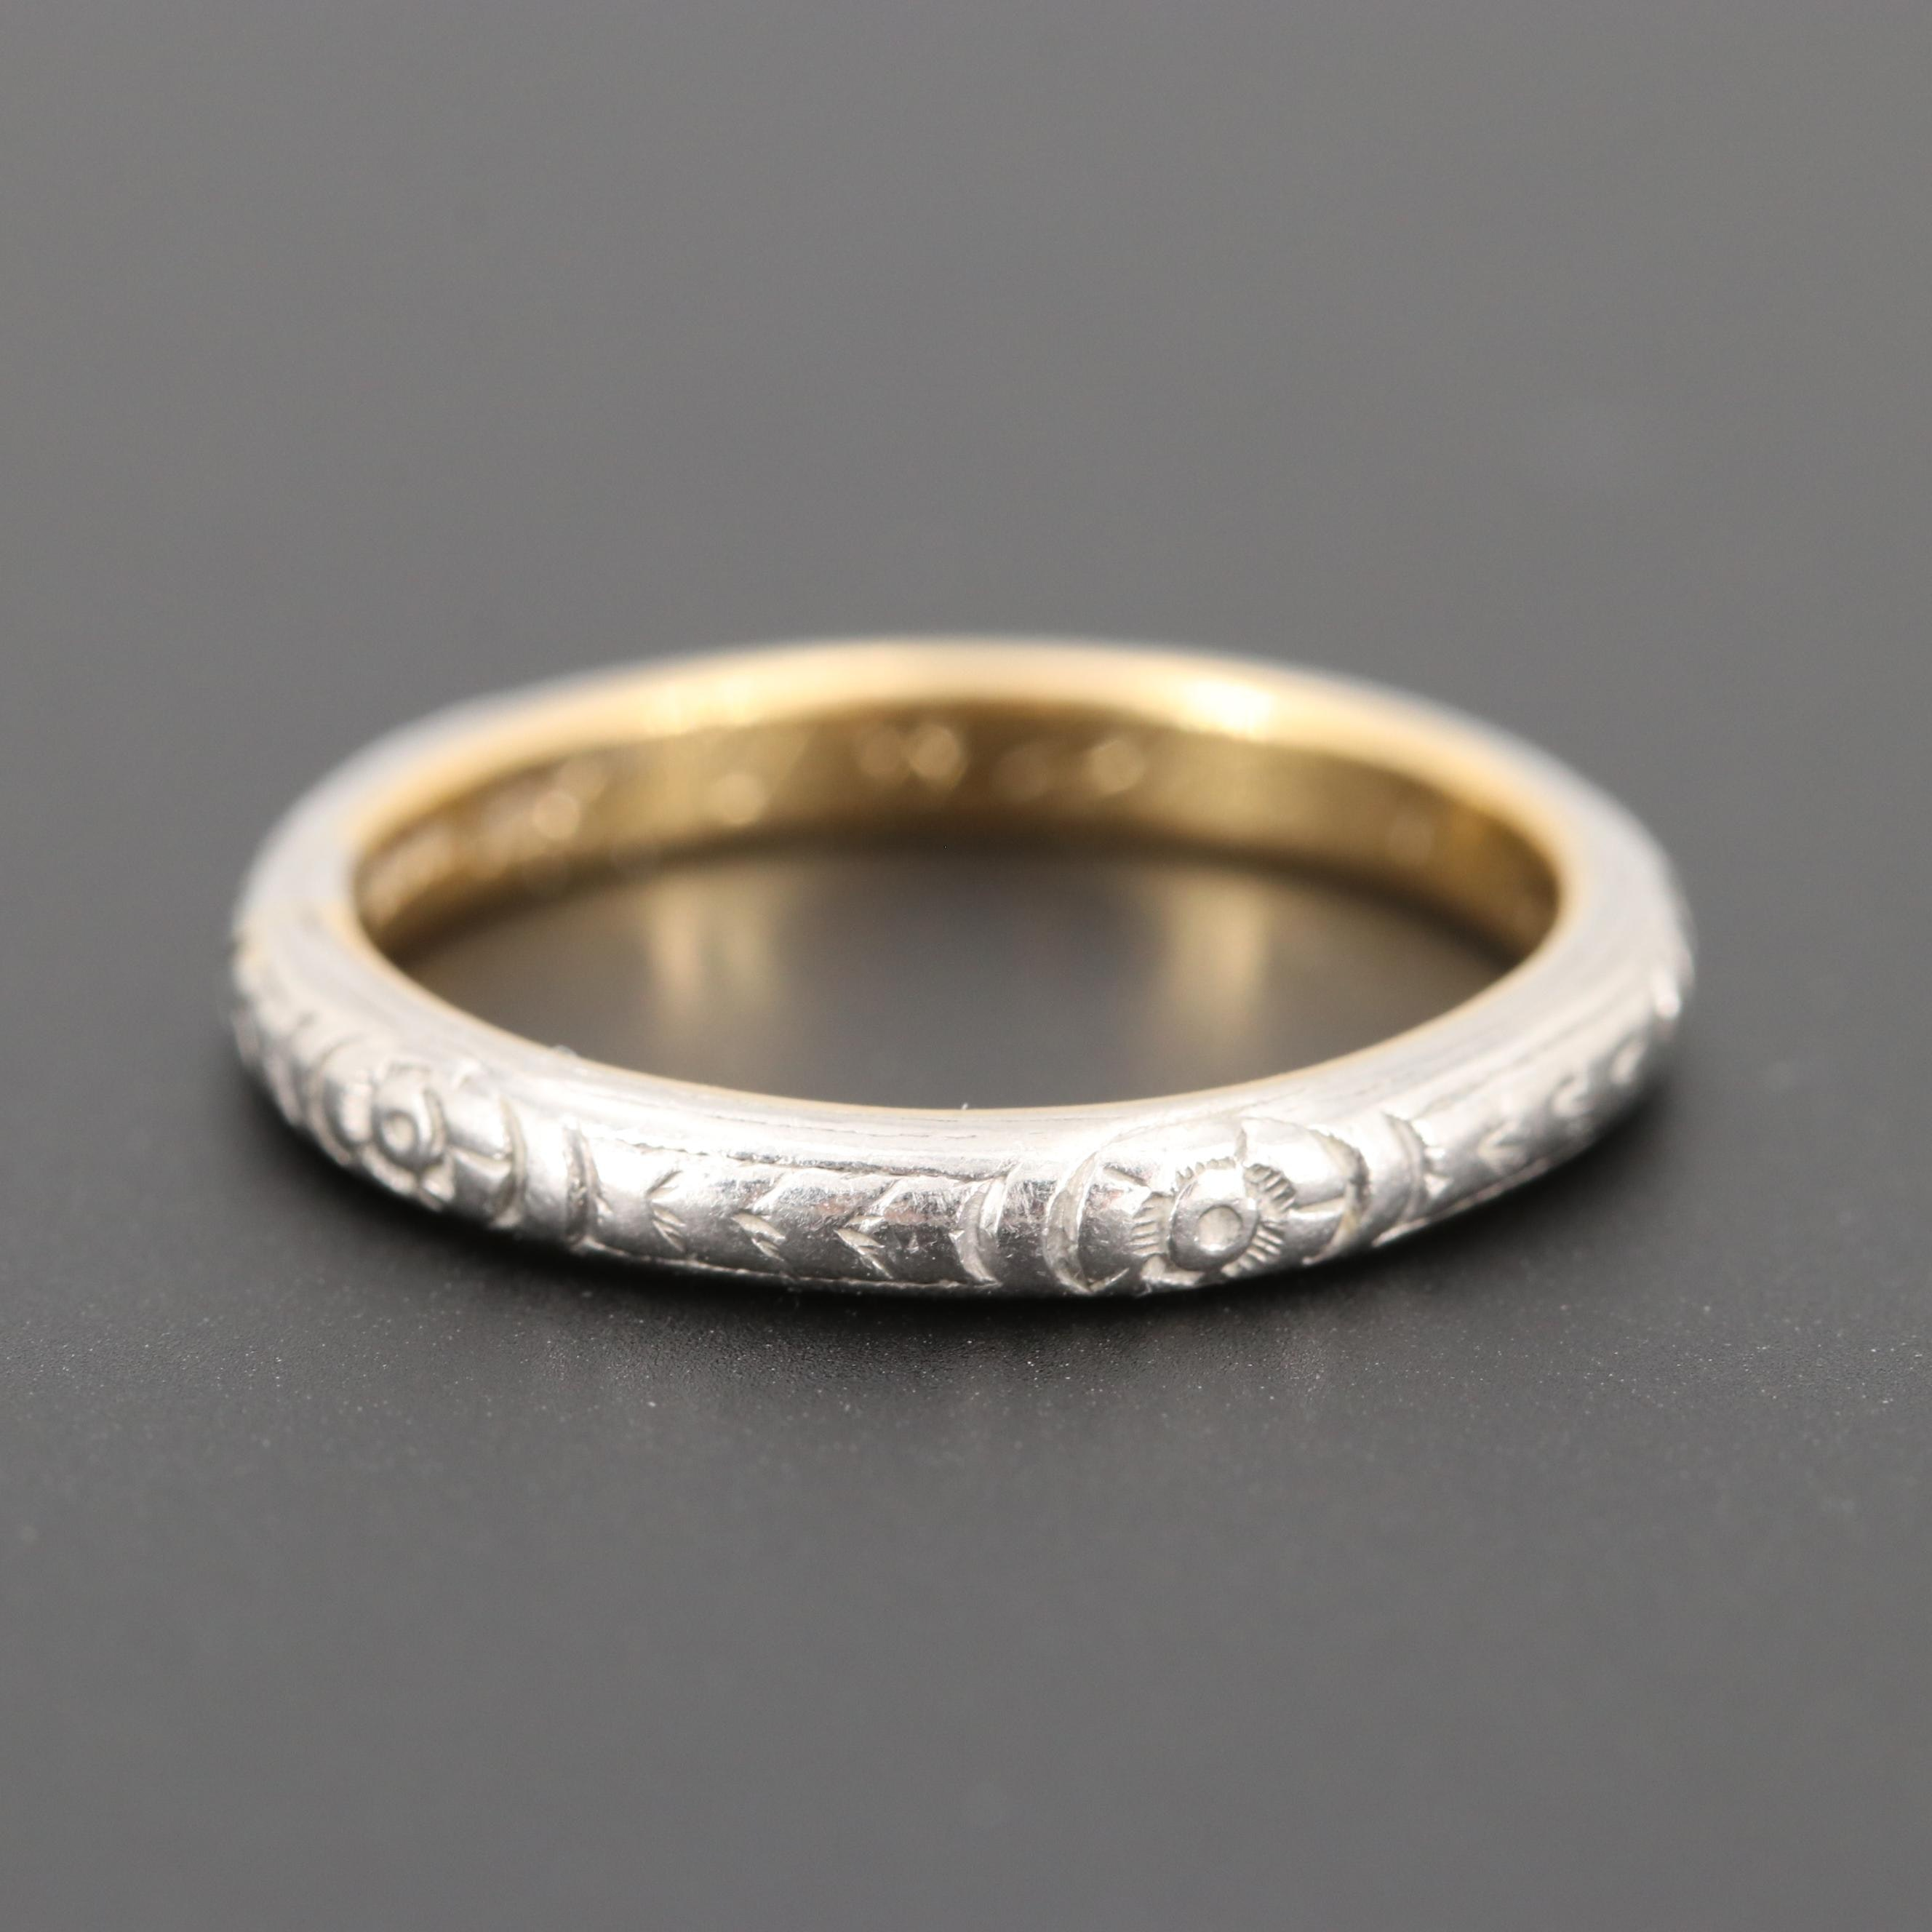 Vintage 18K Yellow Gold and Platinum Engraved Band